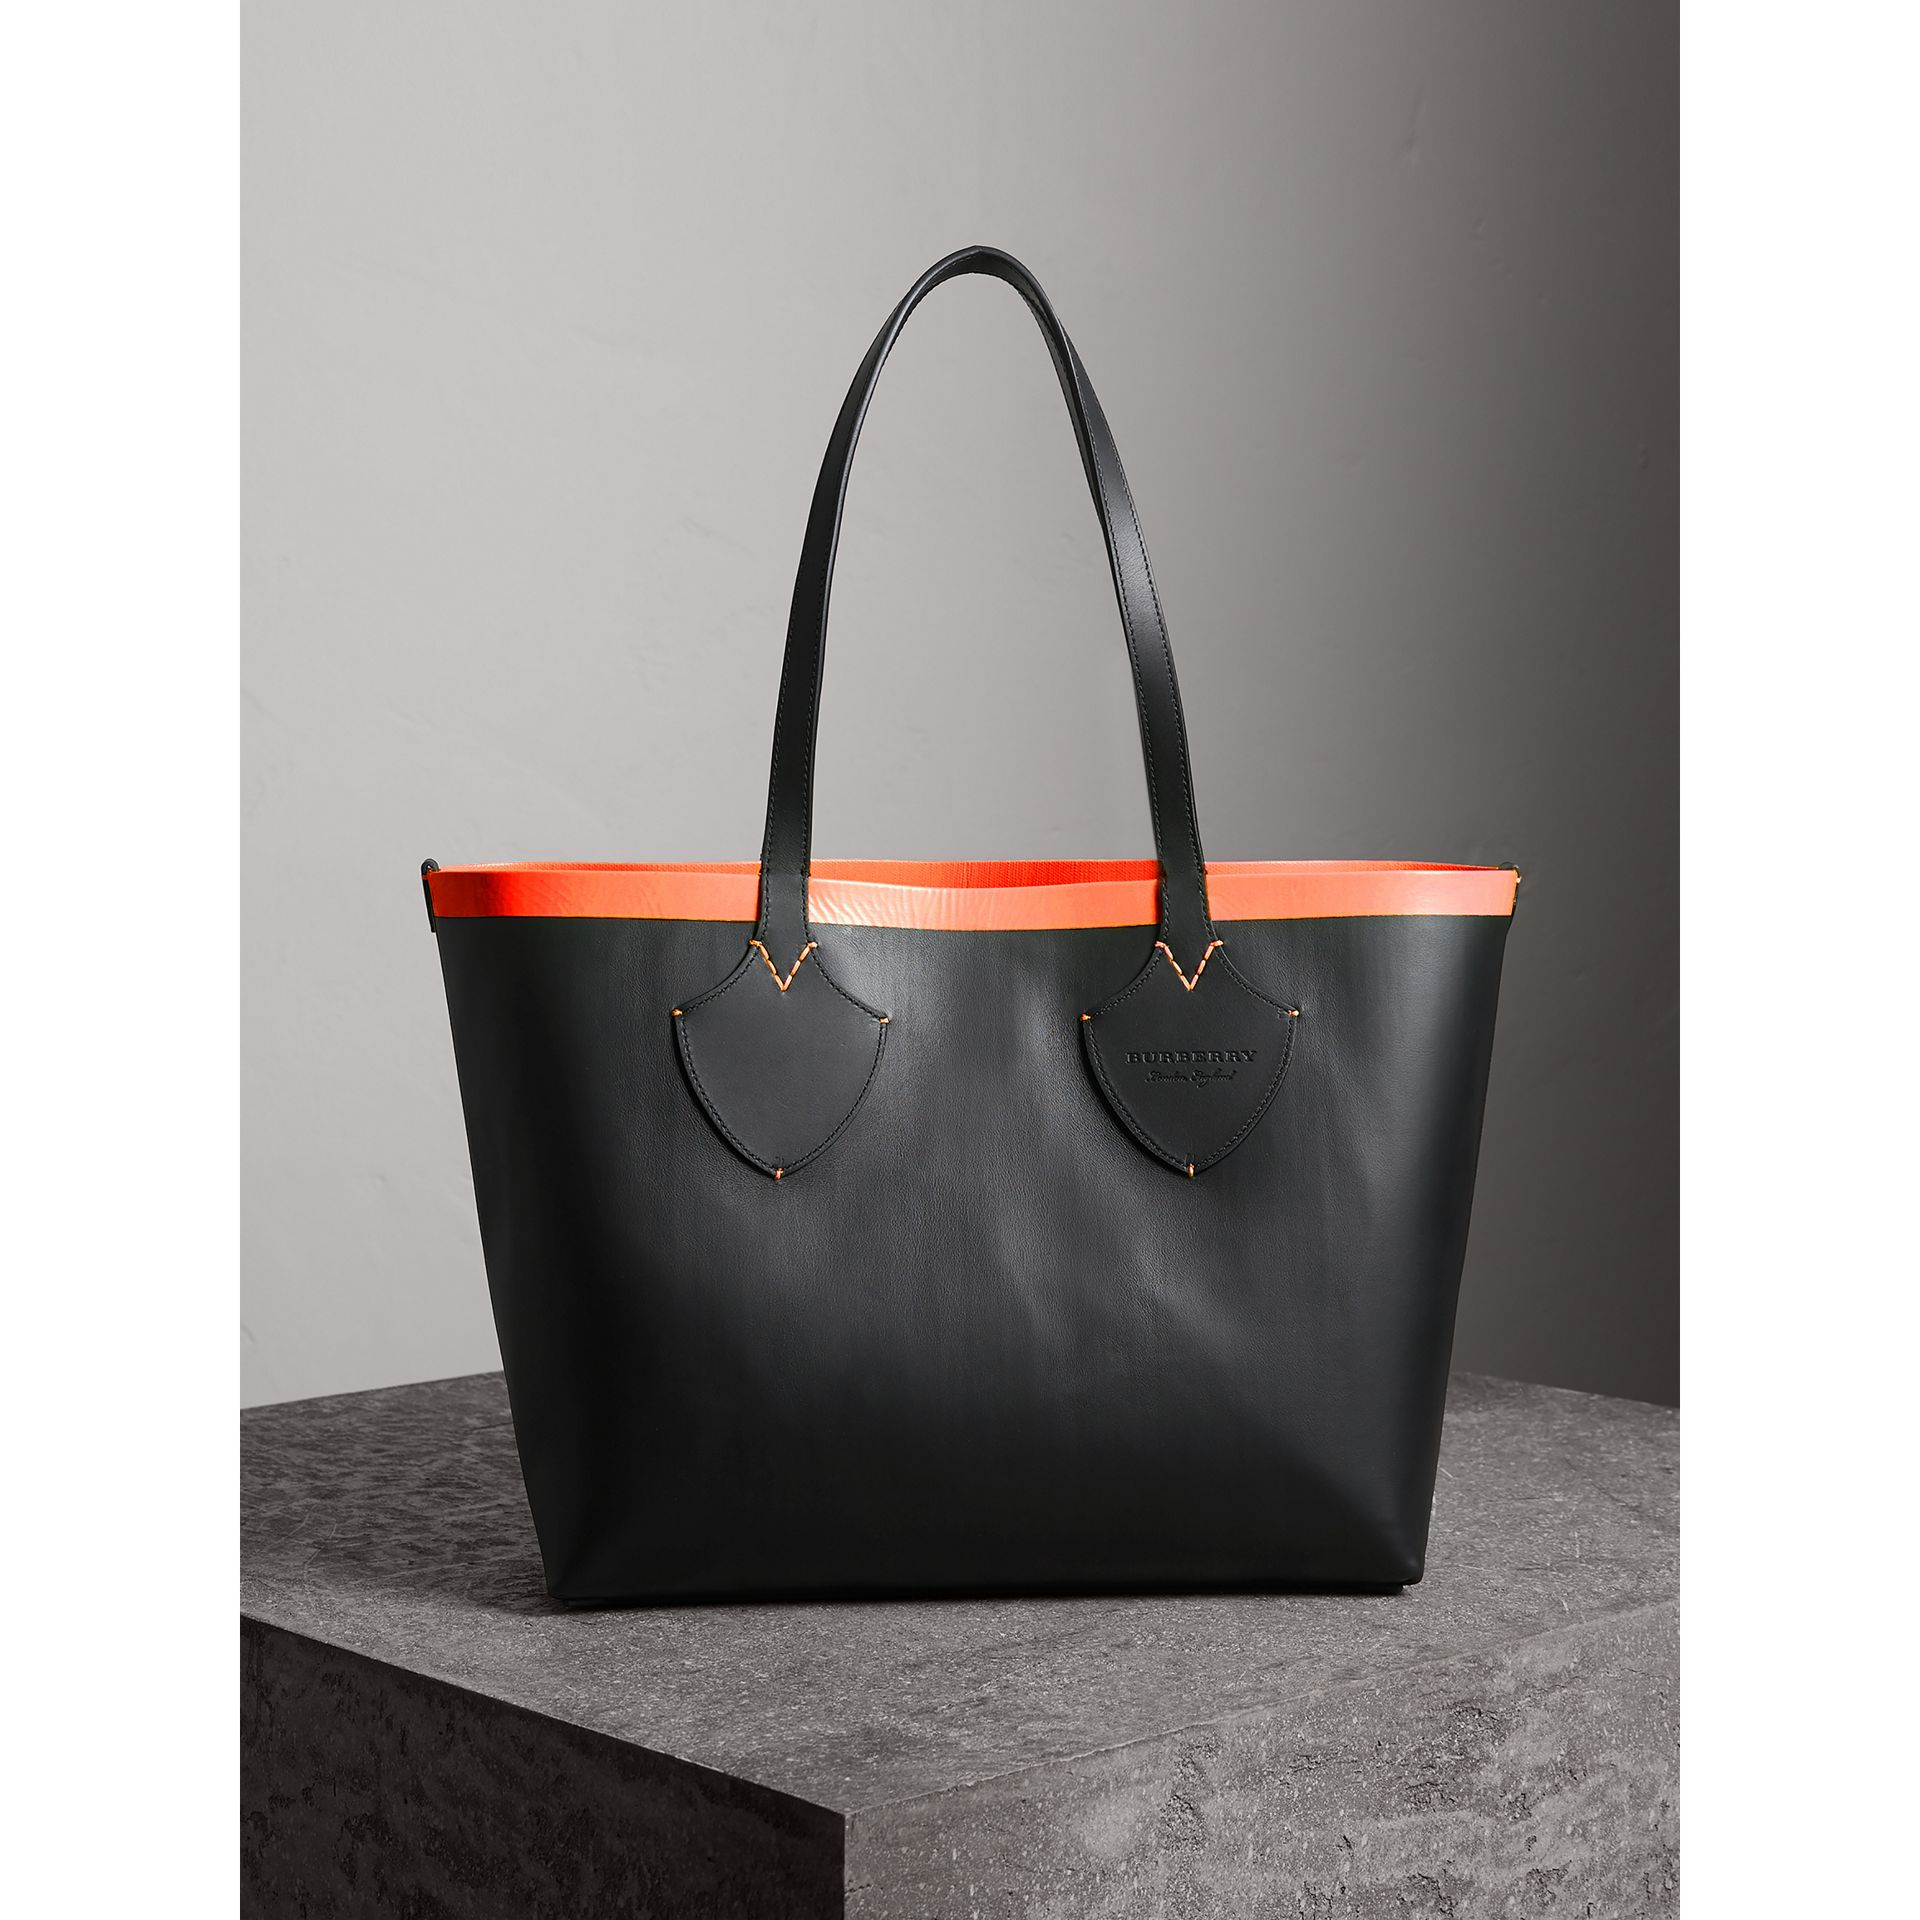 Sac tote The Giant moyen réversible en toile et en cuir (Noir/orange Néon) | Burberry - photo de la galerie 2